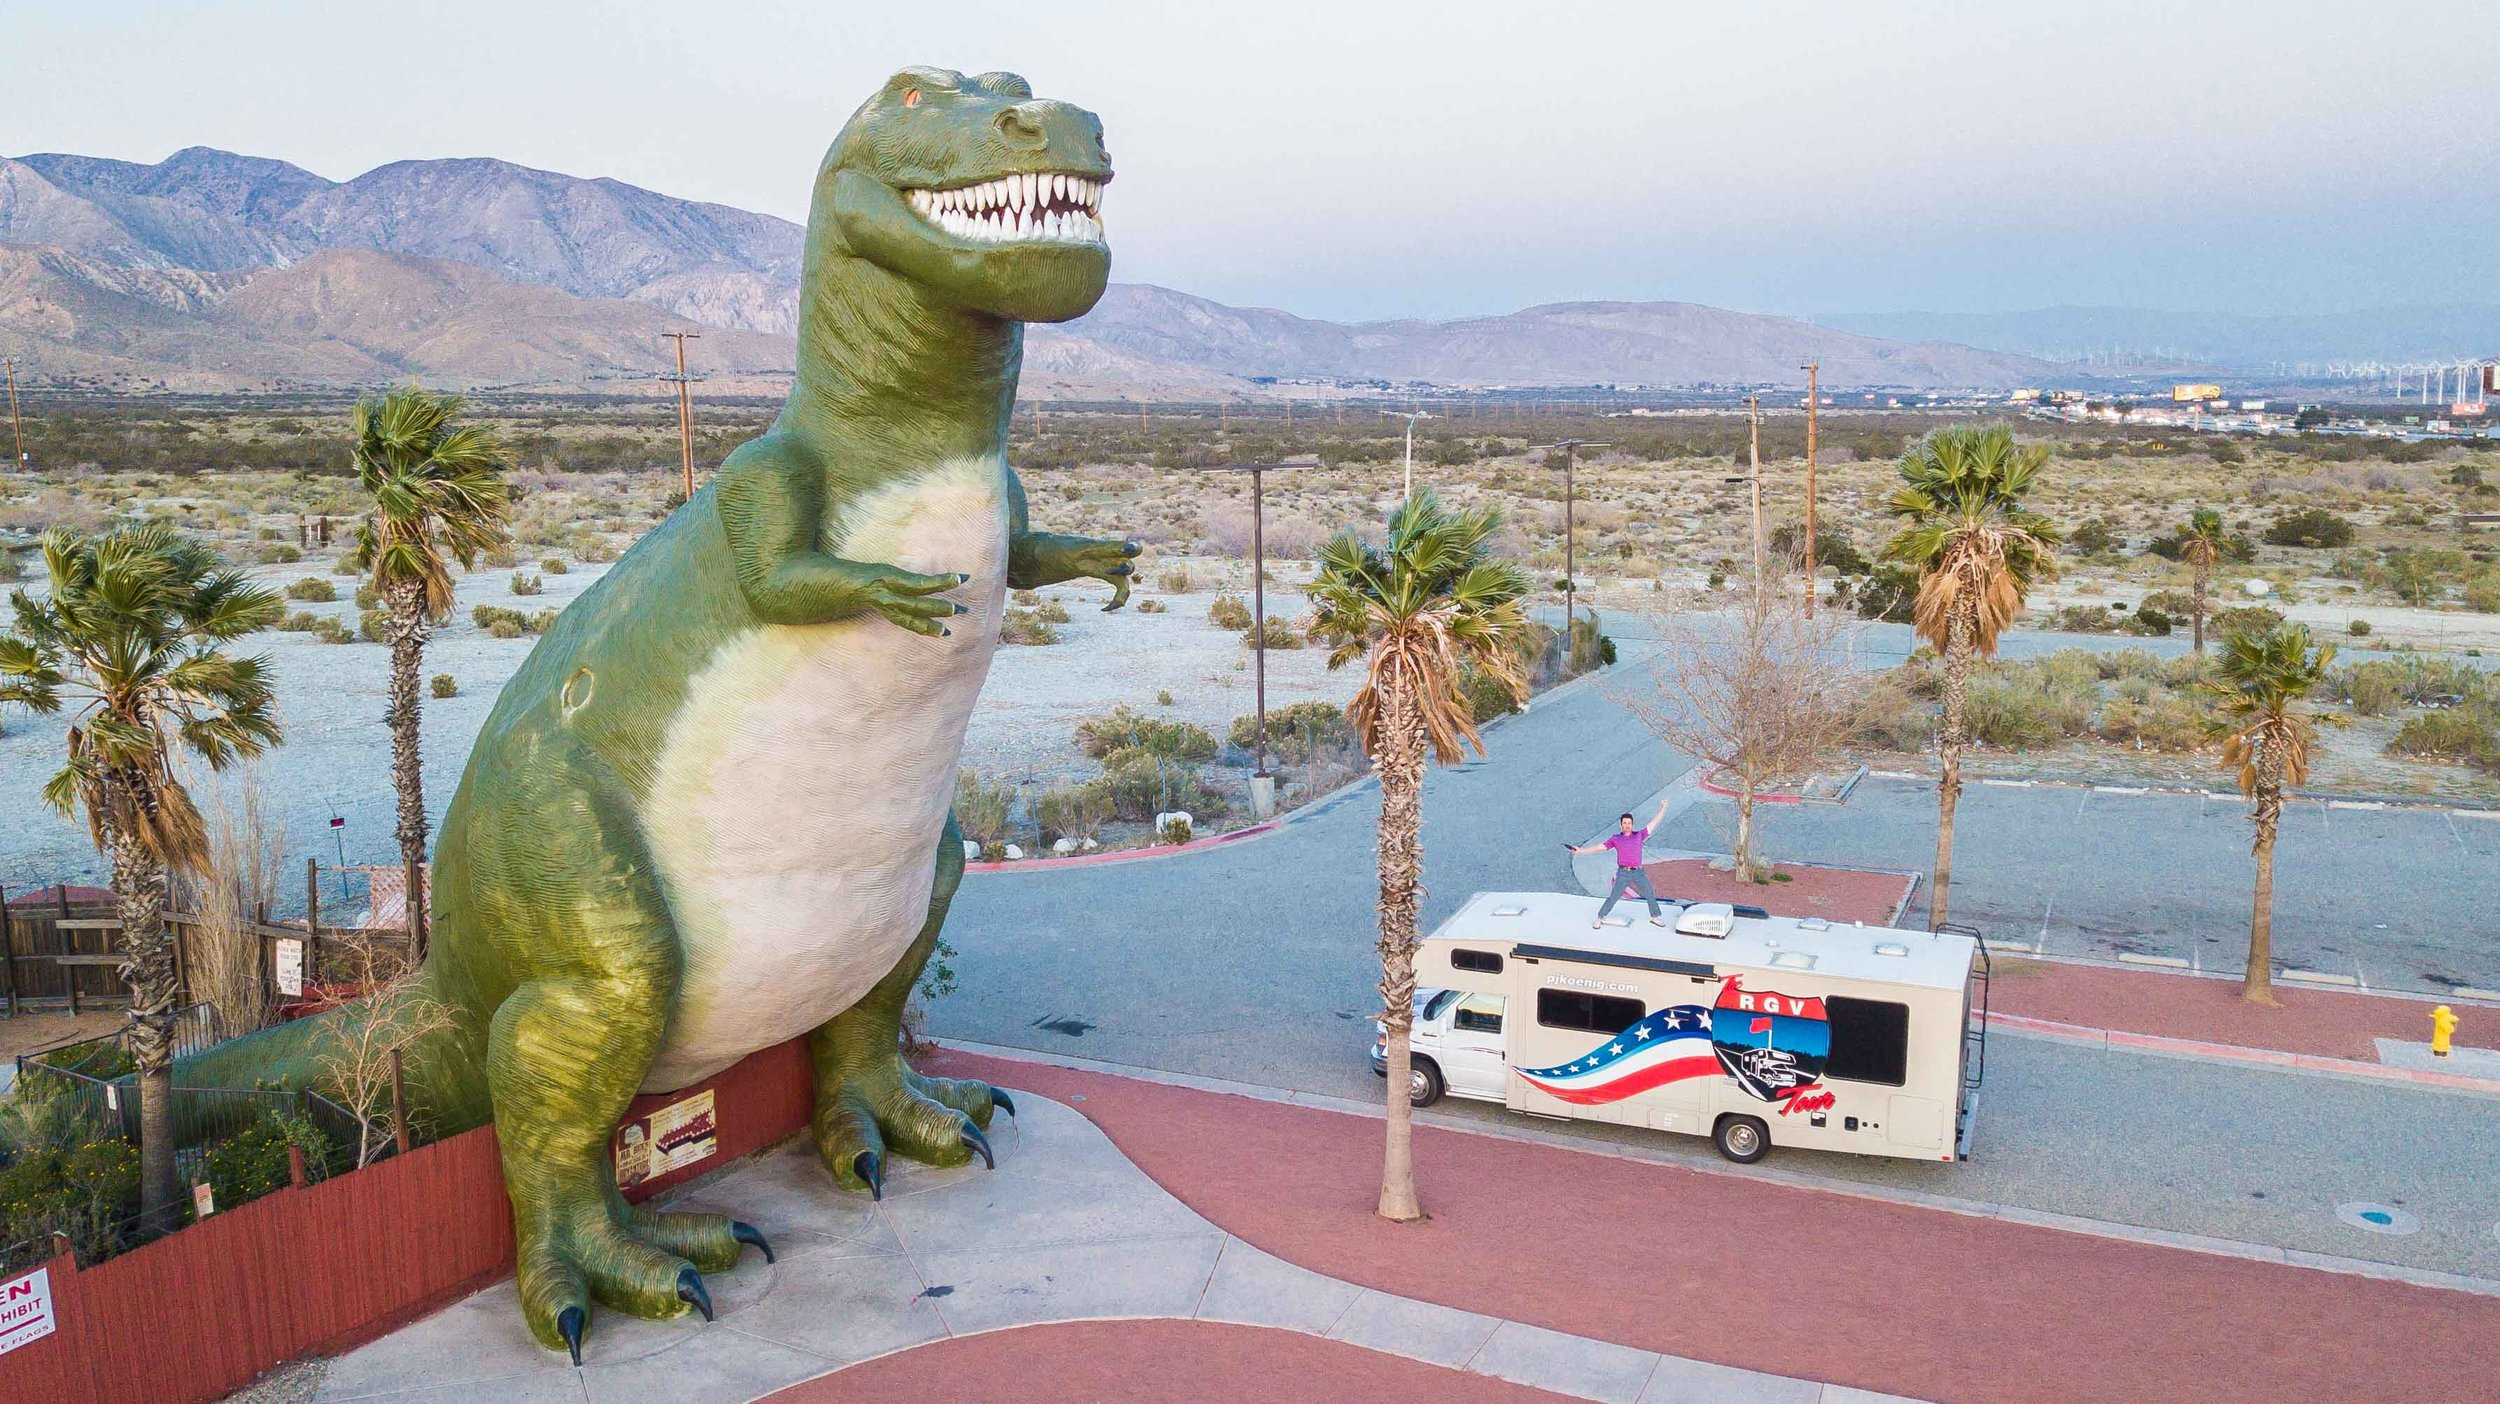 The RGV Tour visits the Cabazon Dinosaurs from Pee Wee's Big Adventure.